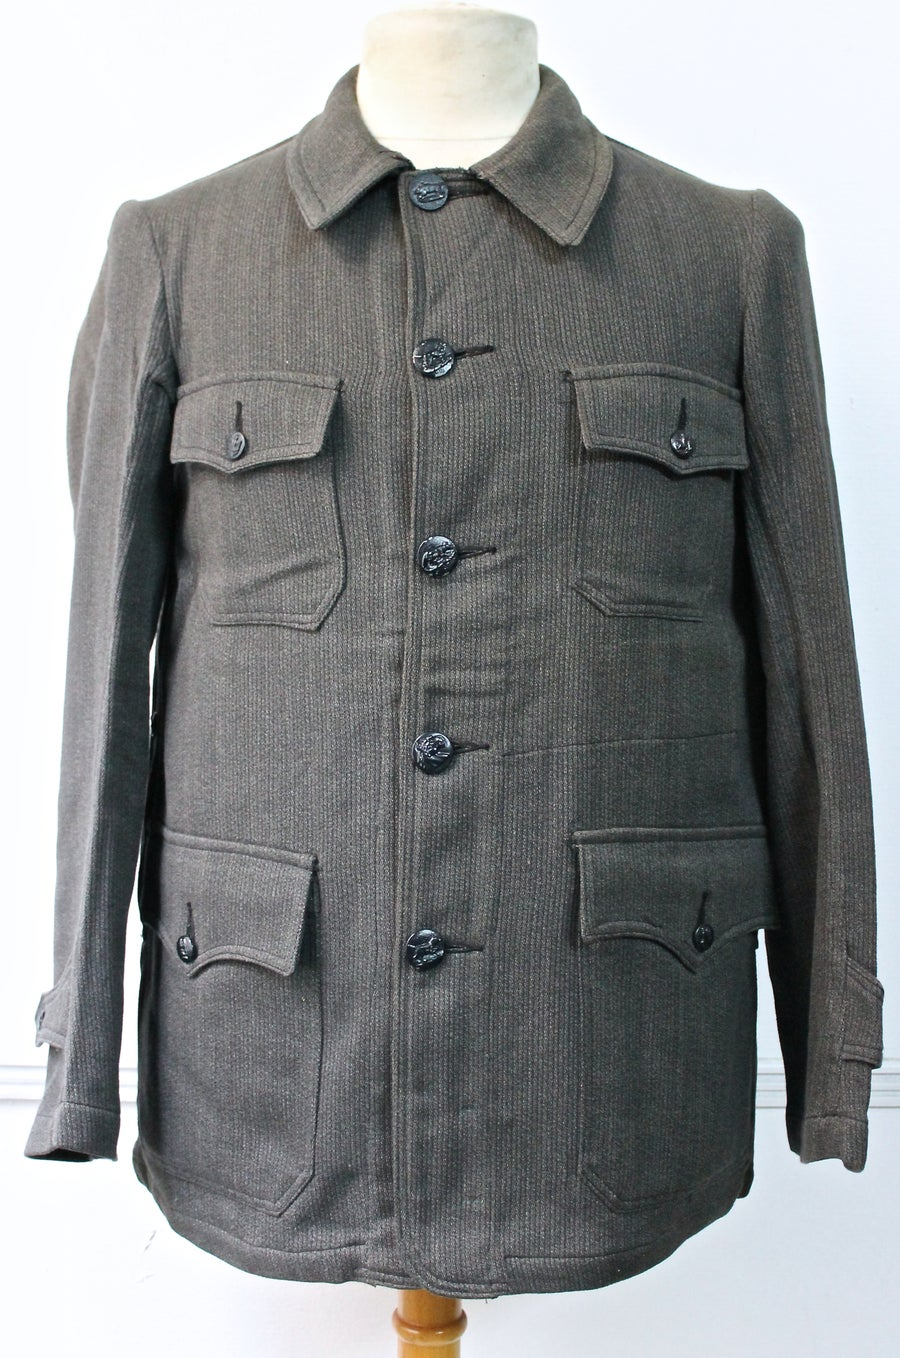 Image of 1950's FRENCH HUNTING SALT N' PEPPER BEDFORD CORD JACKET DEADSTOCK